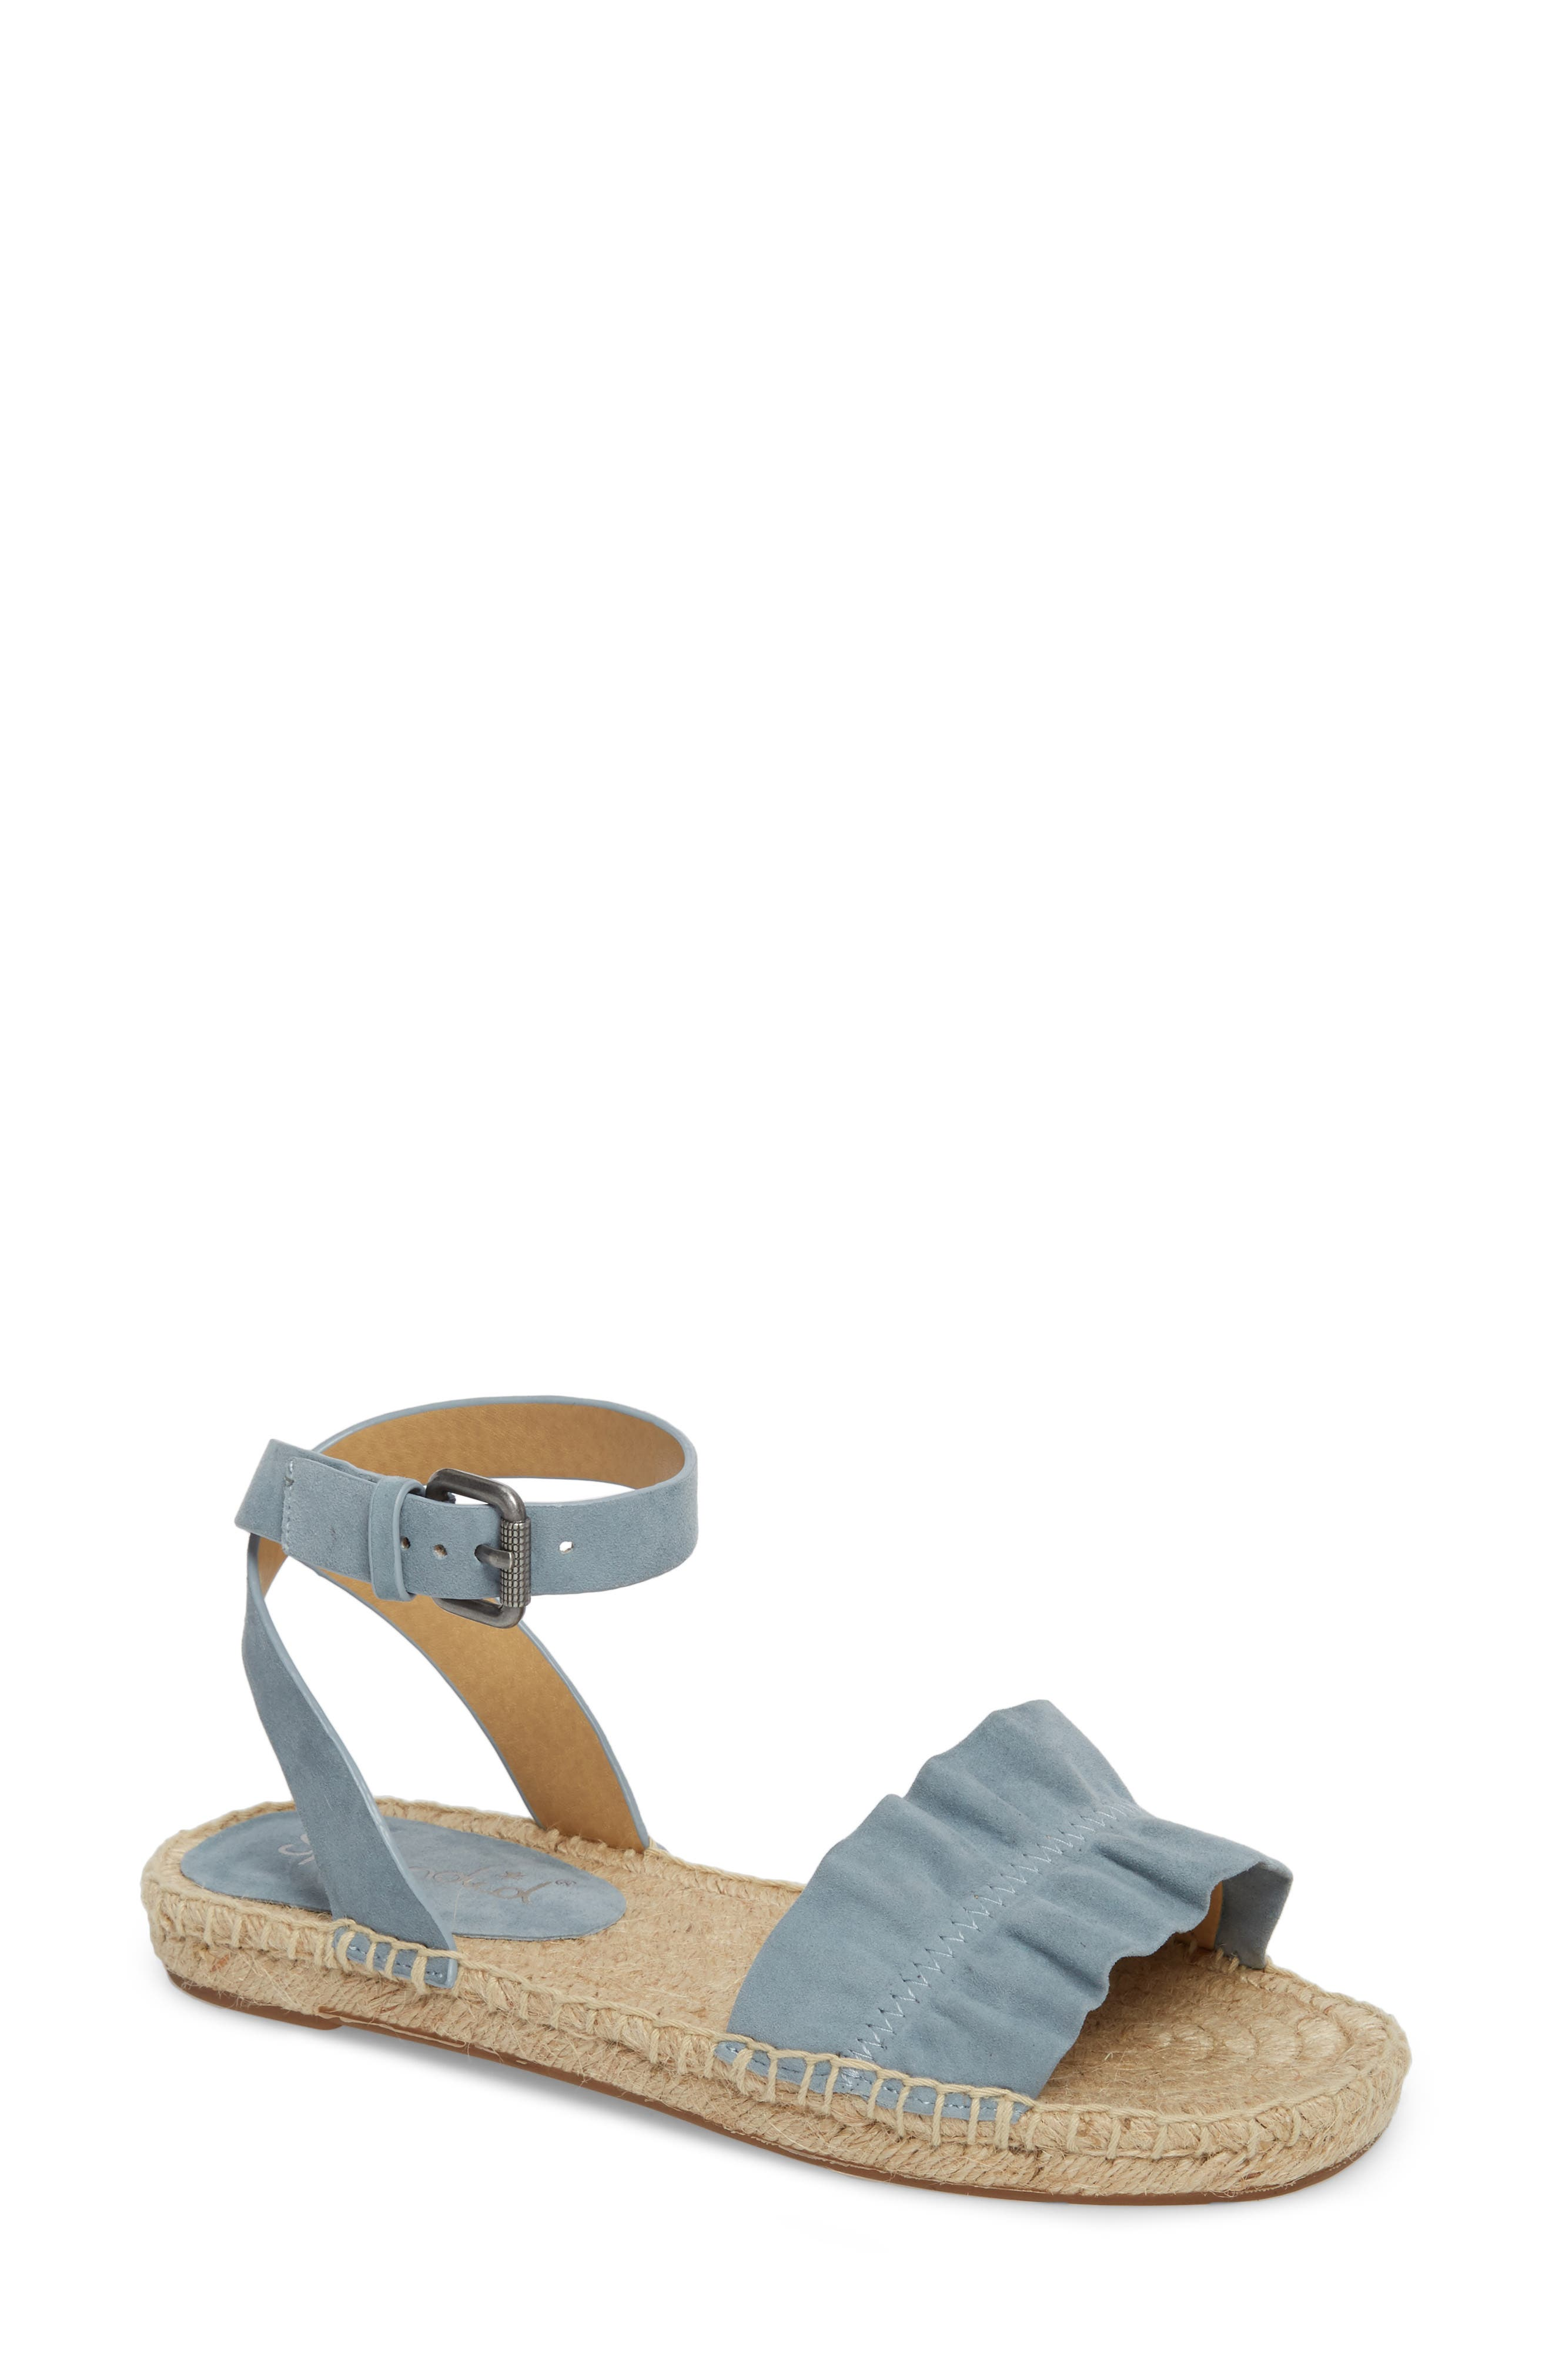 Becca Ruffled Espadrille Sandal,                             Main thumbnail 1, color,                             Shadow Blue Suede